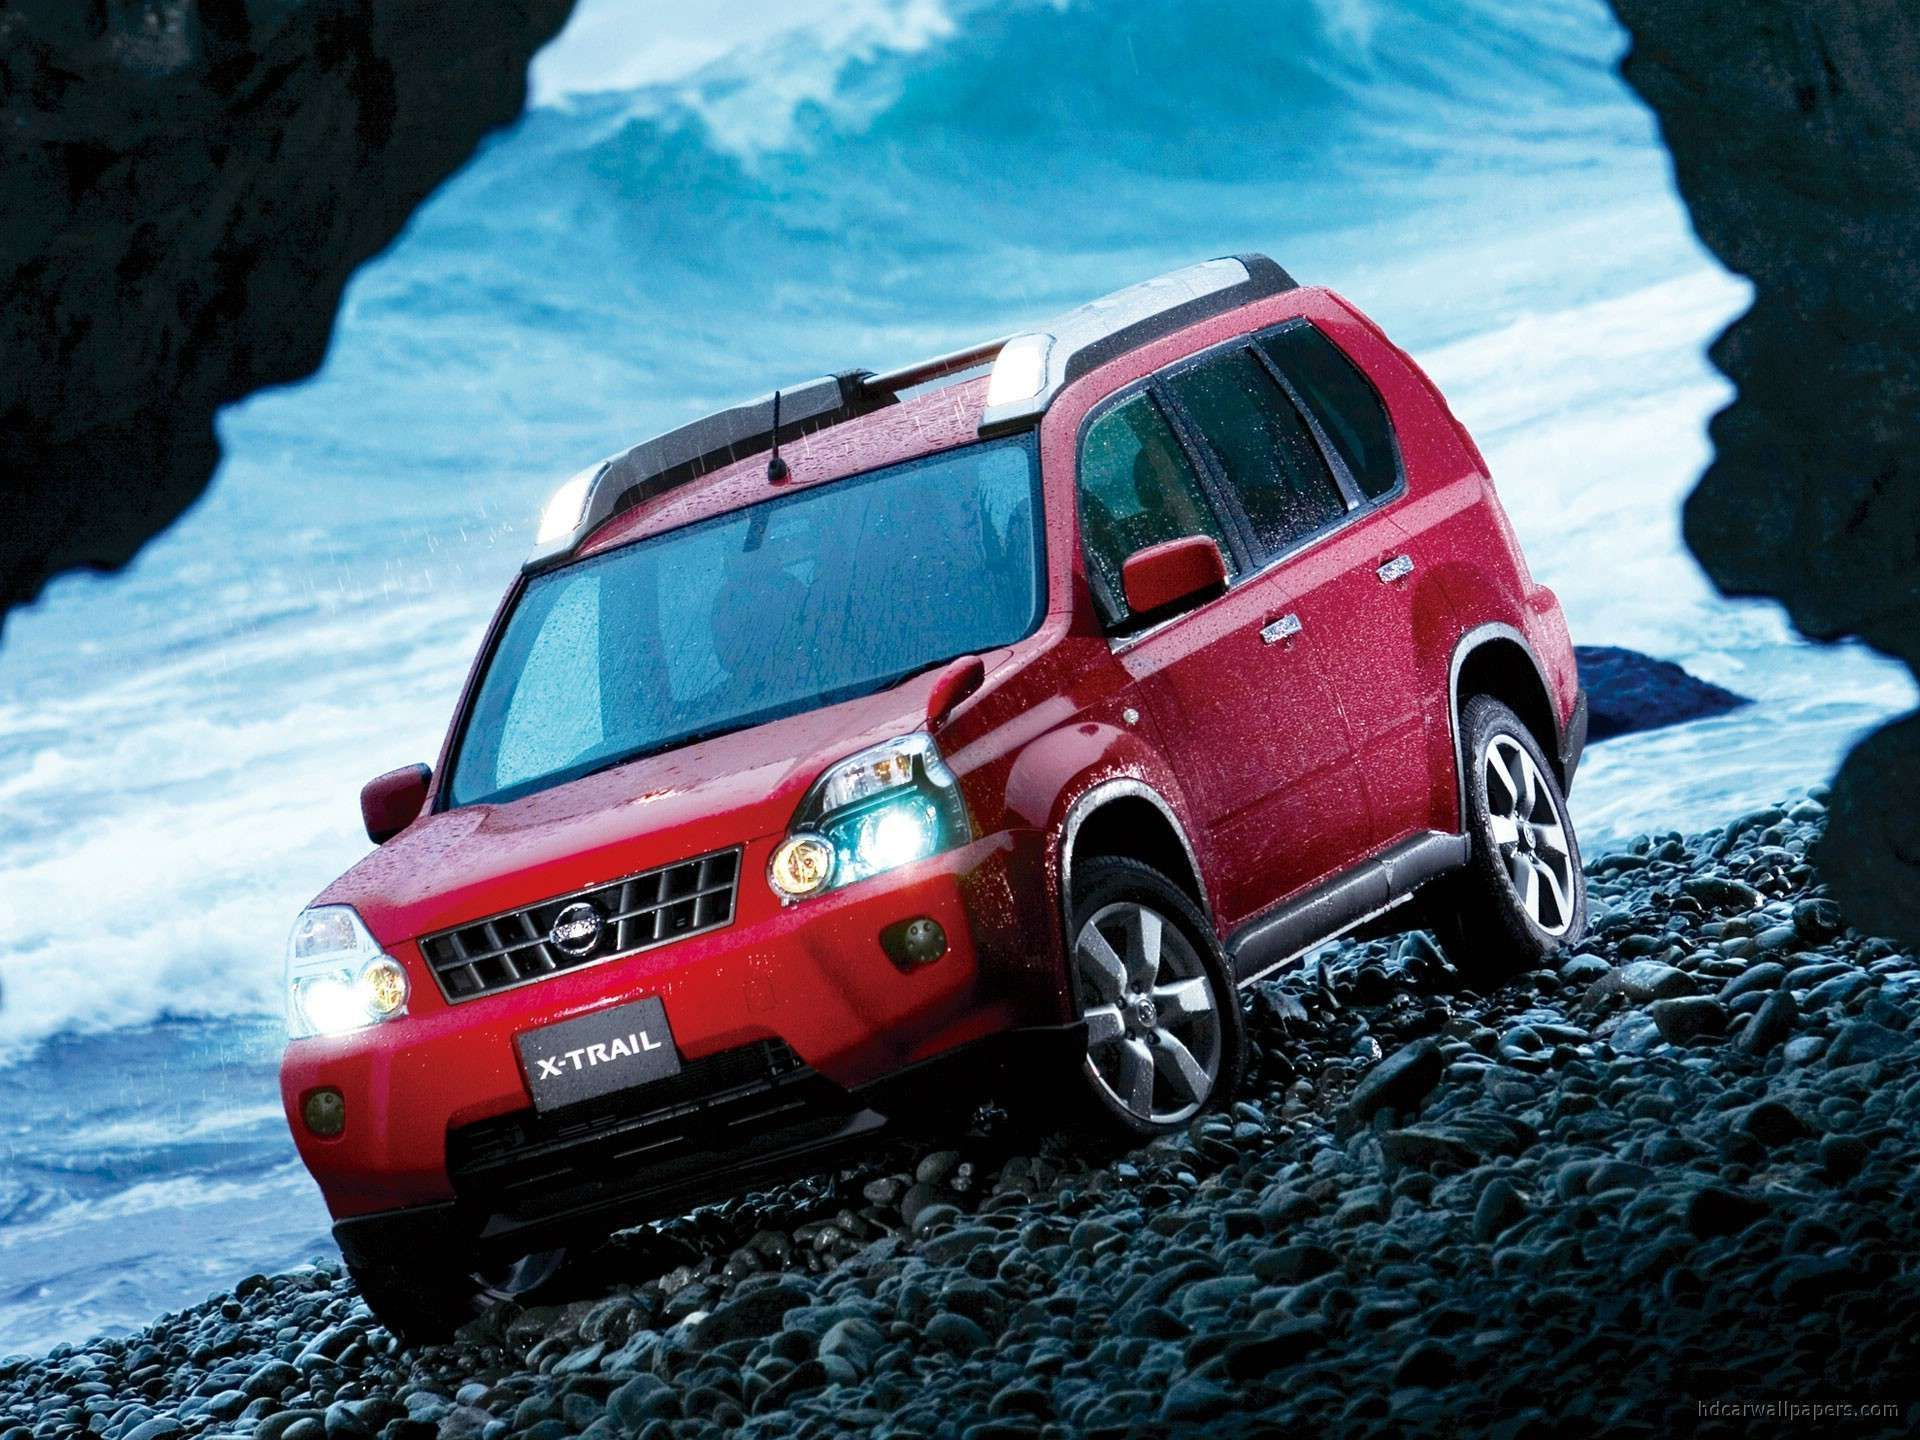 Click here to download in hd format nissan x trail hd click here to download in hd format nissan x trail hd wallpapers https fandeluxe Gallery